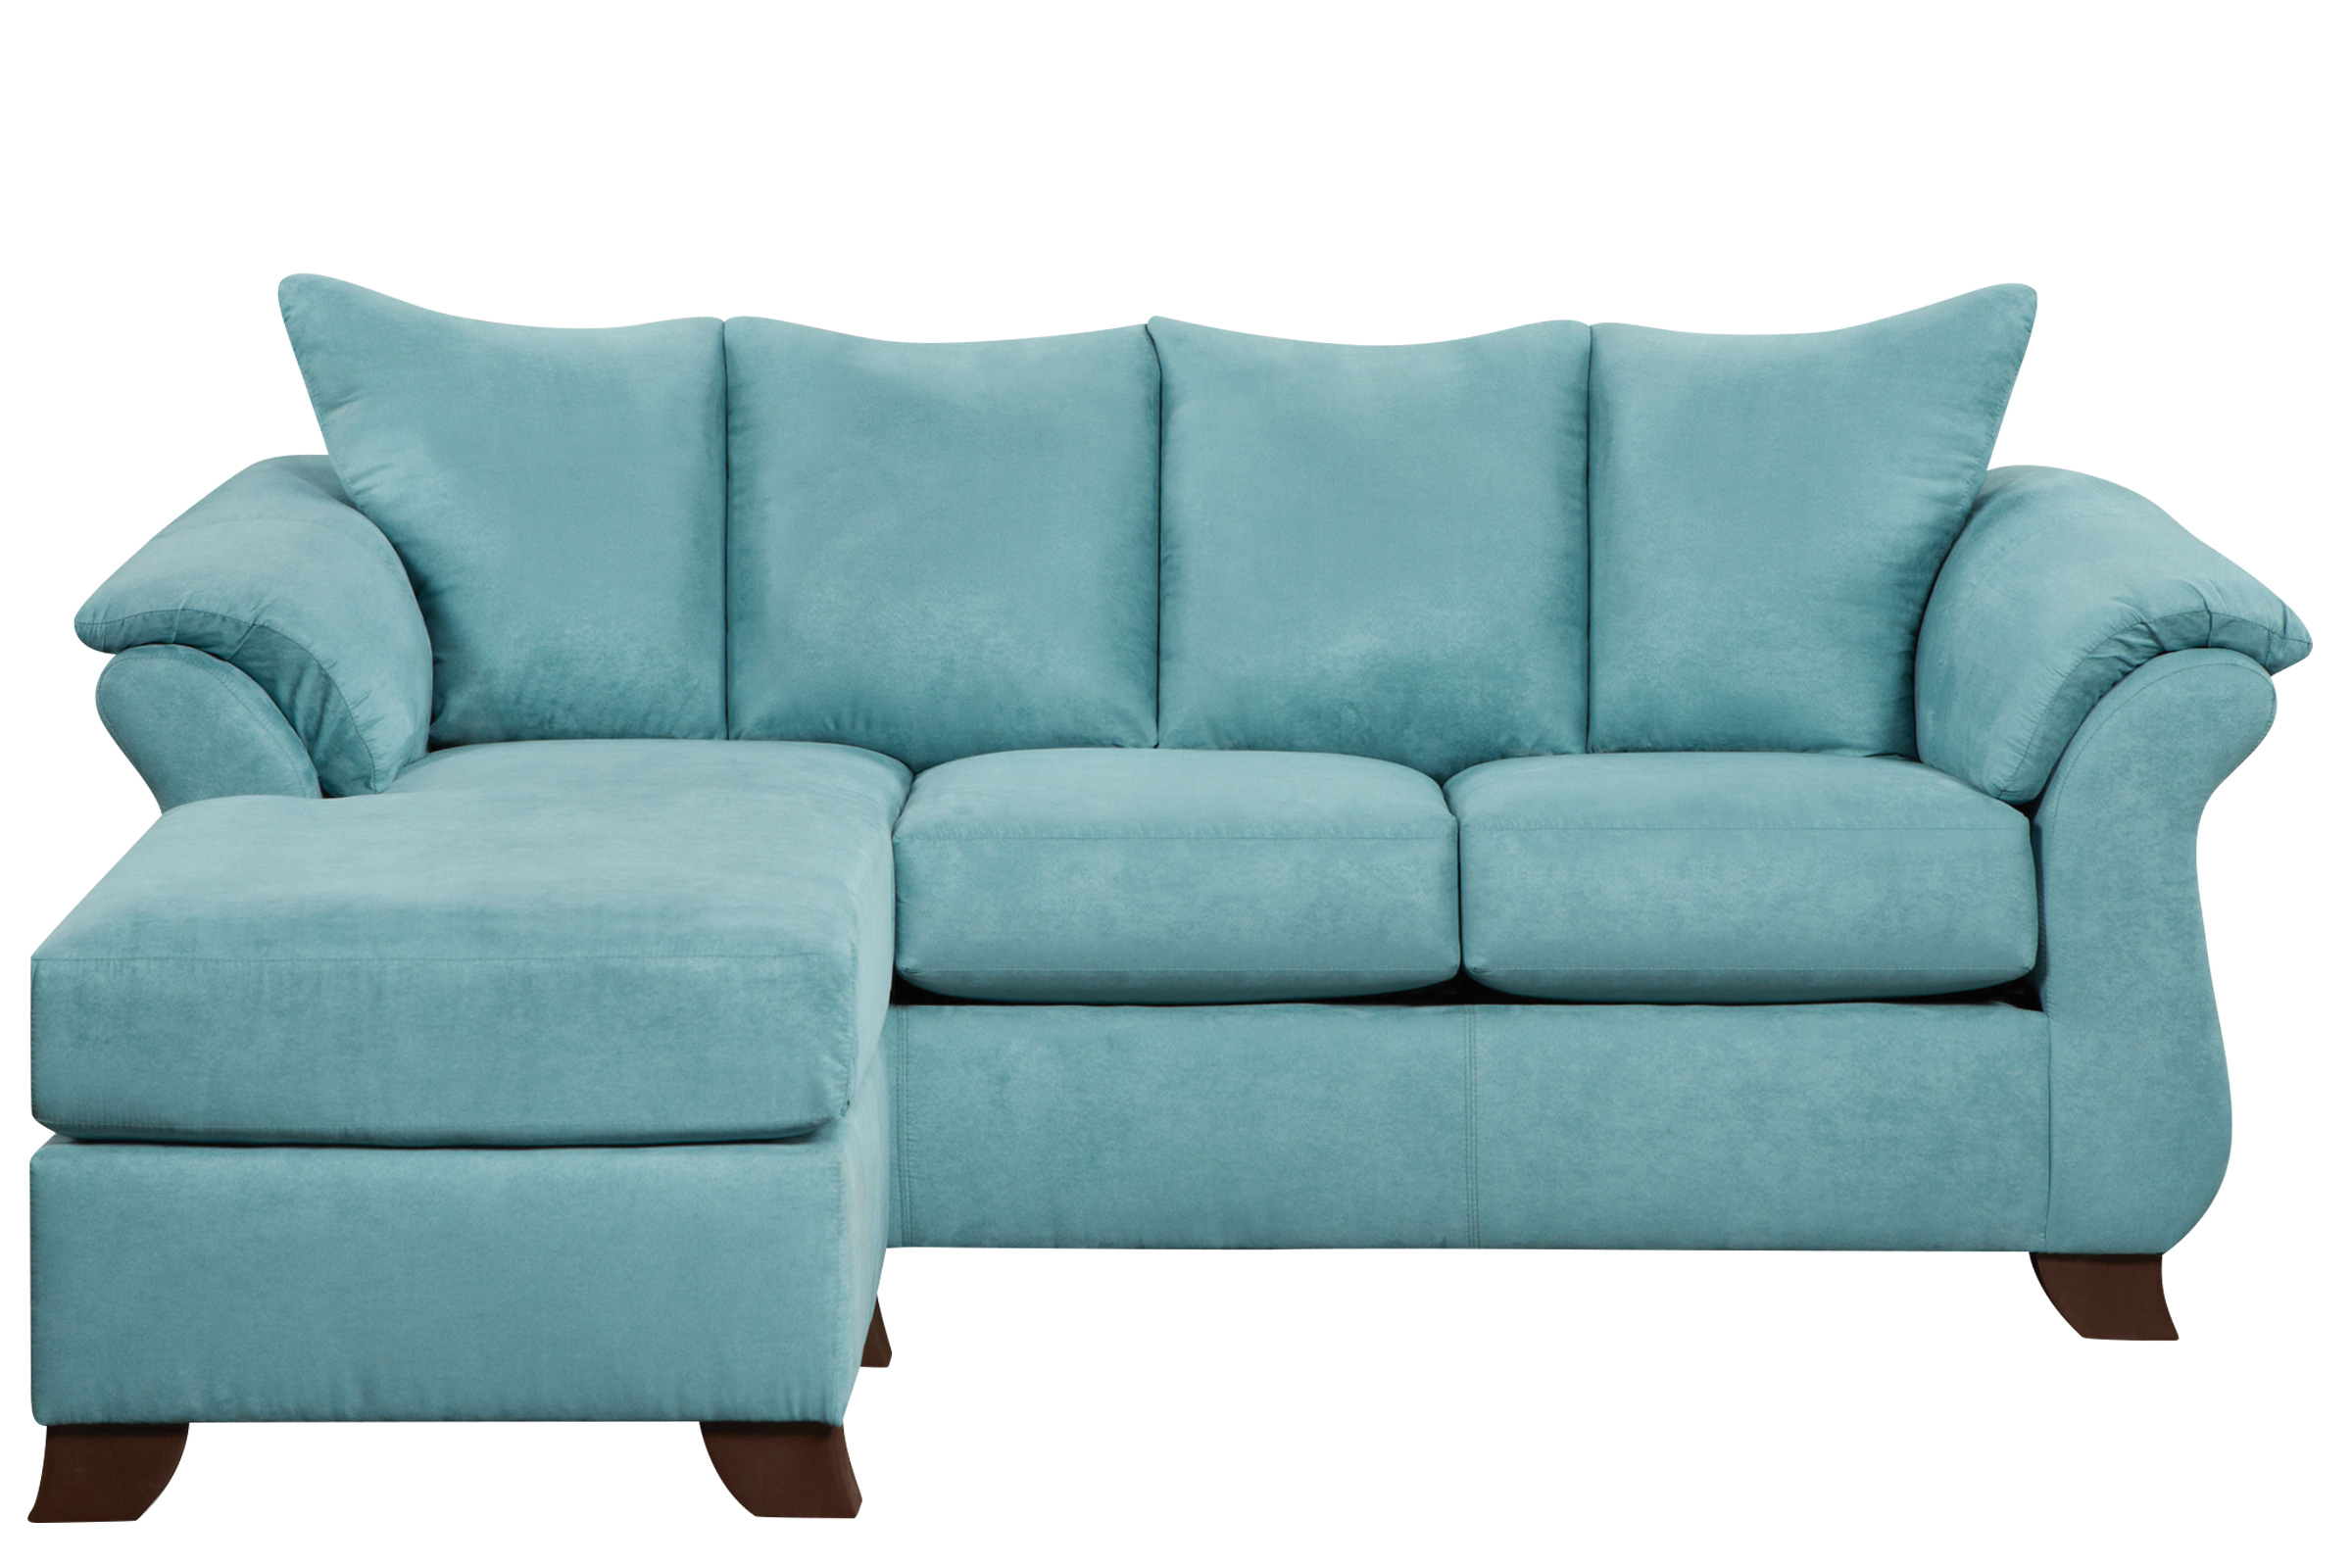 Shop Sofas at Gardner White Furniture